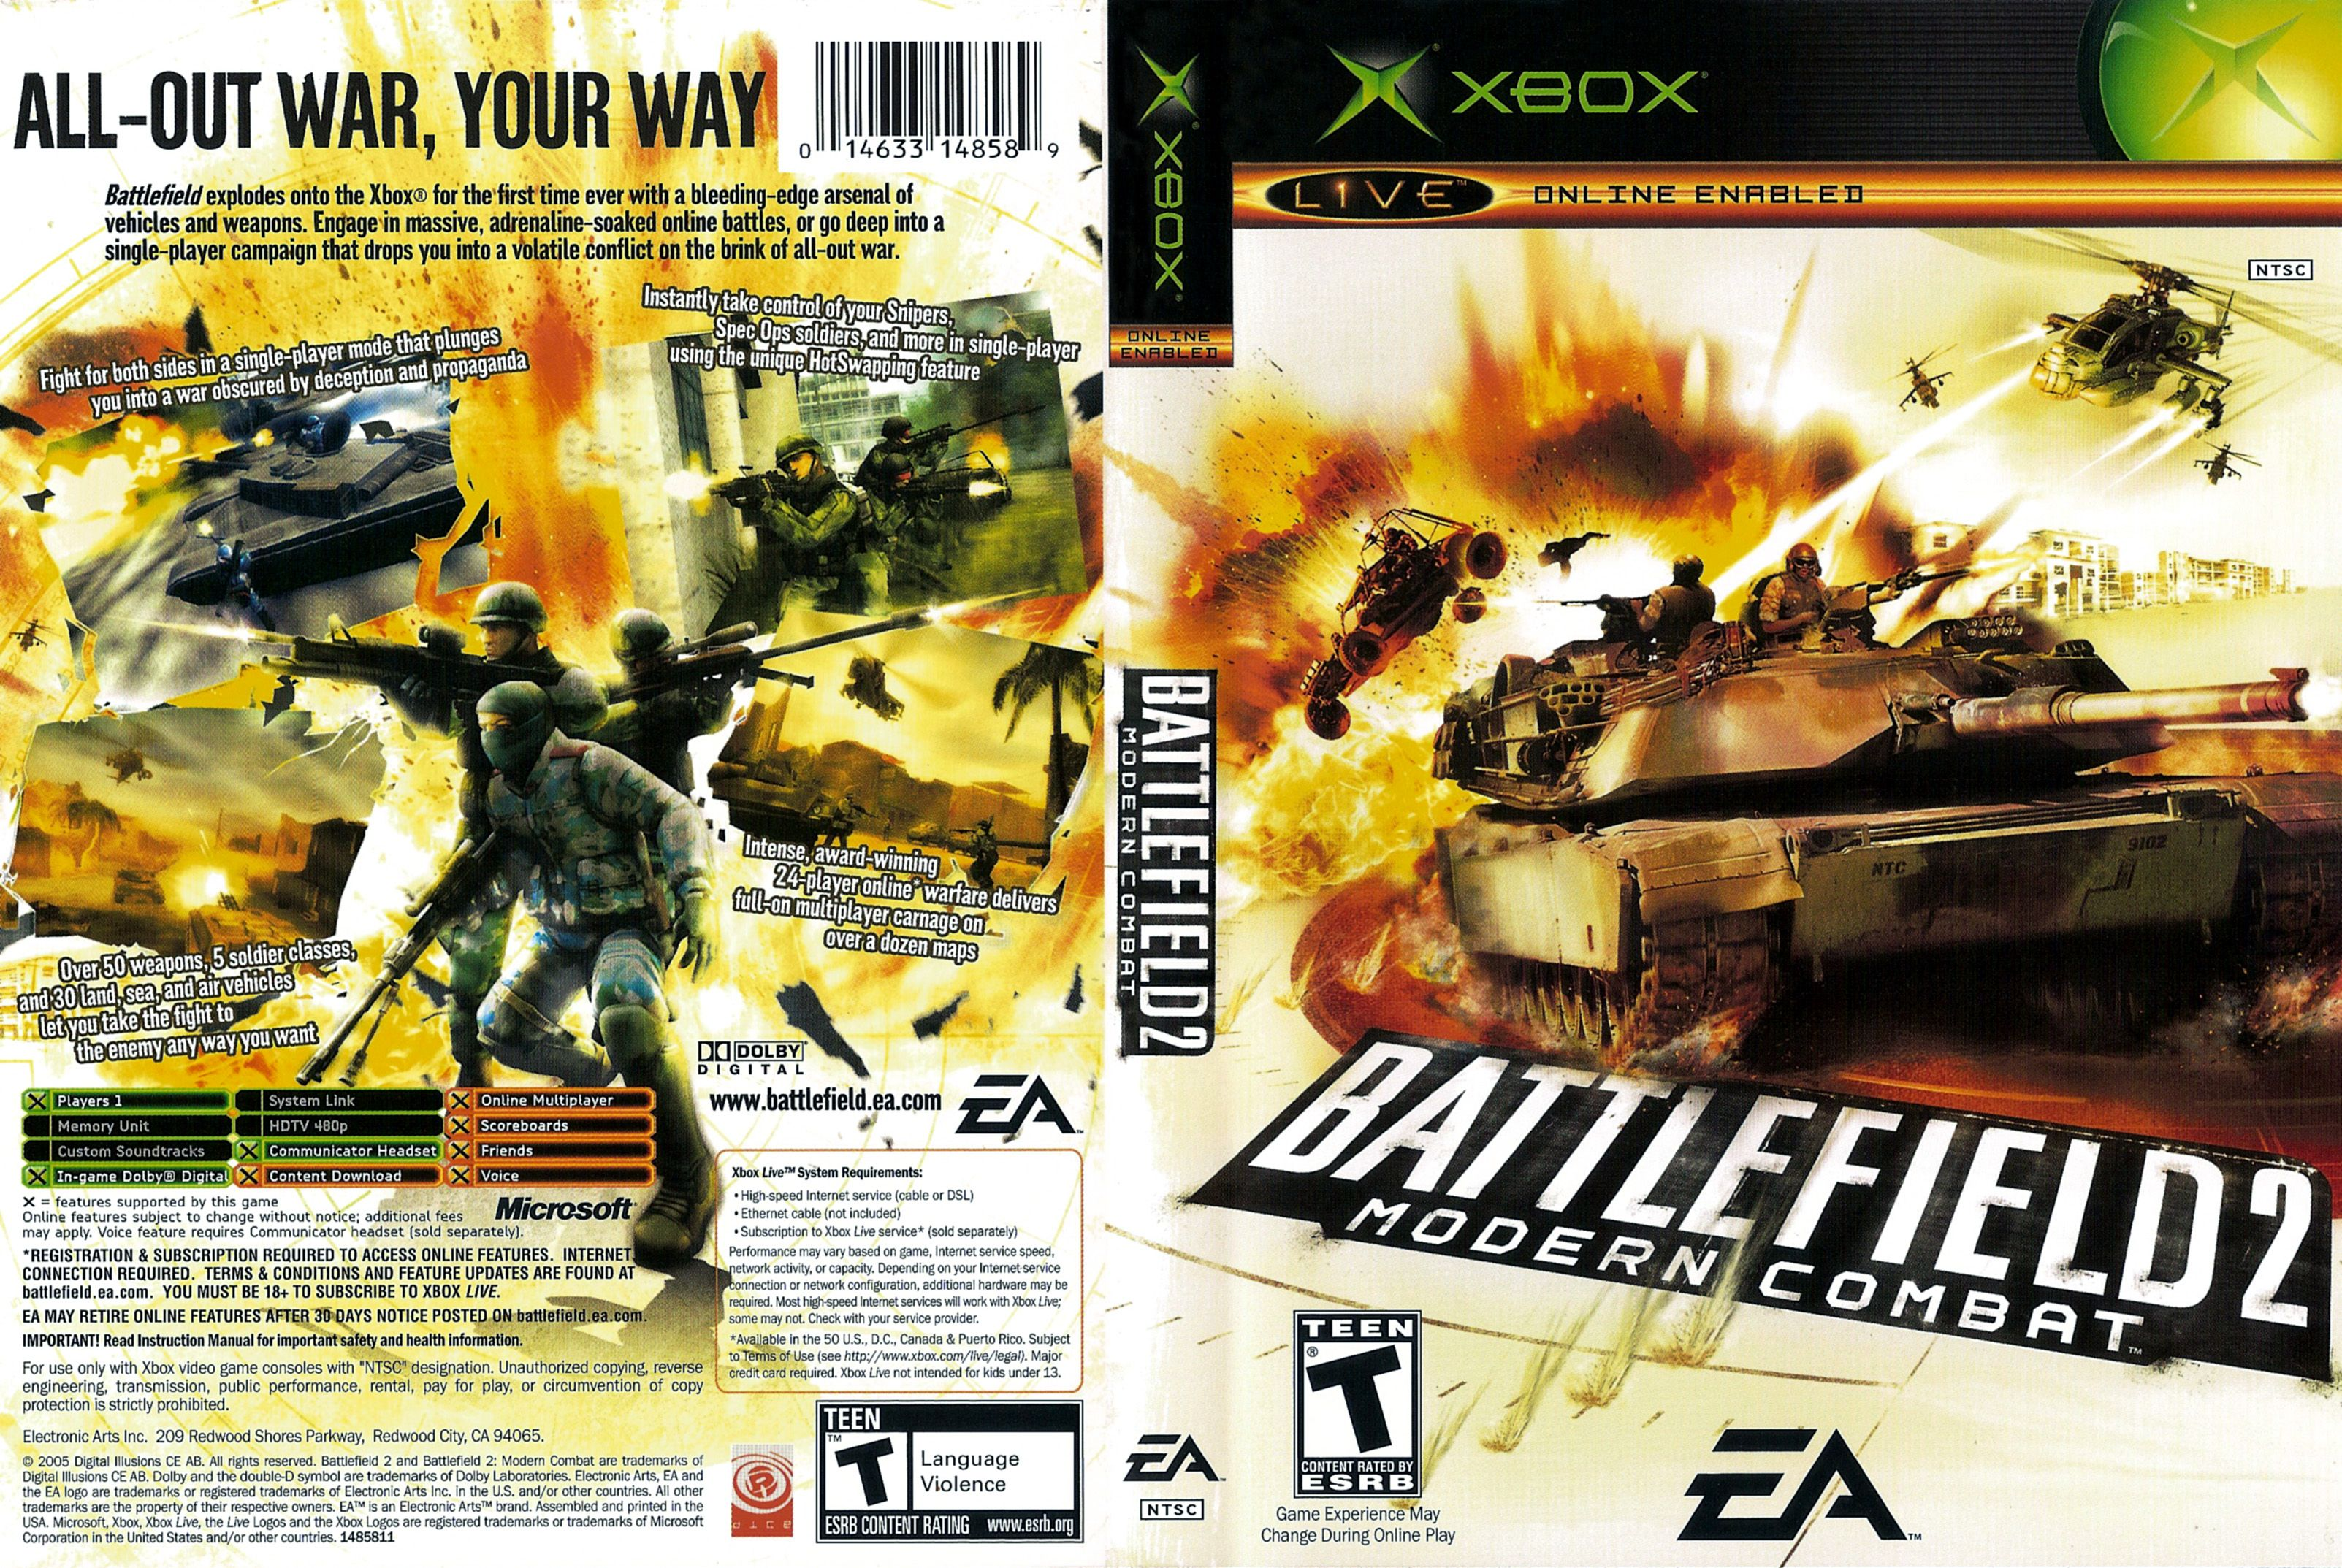 Xbox Battlefield 2 Modern Combat With Images Play Online